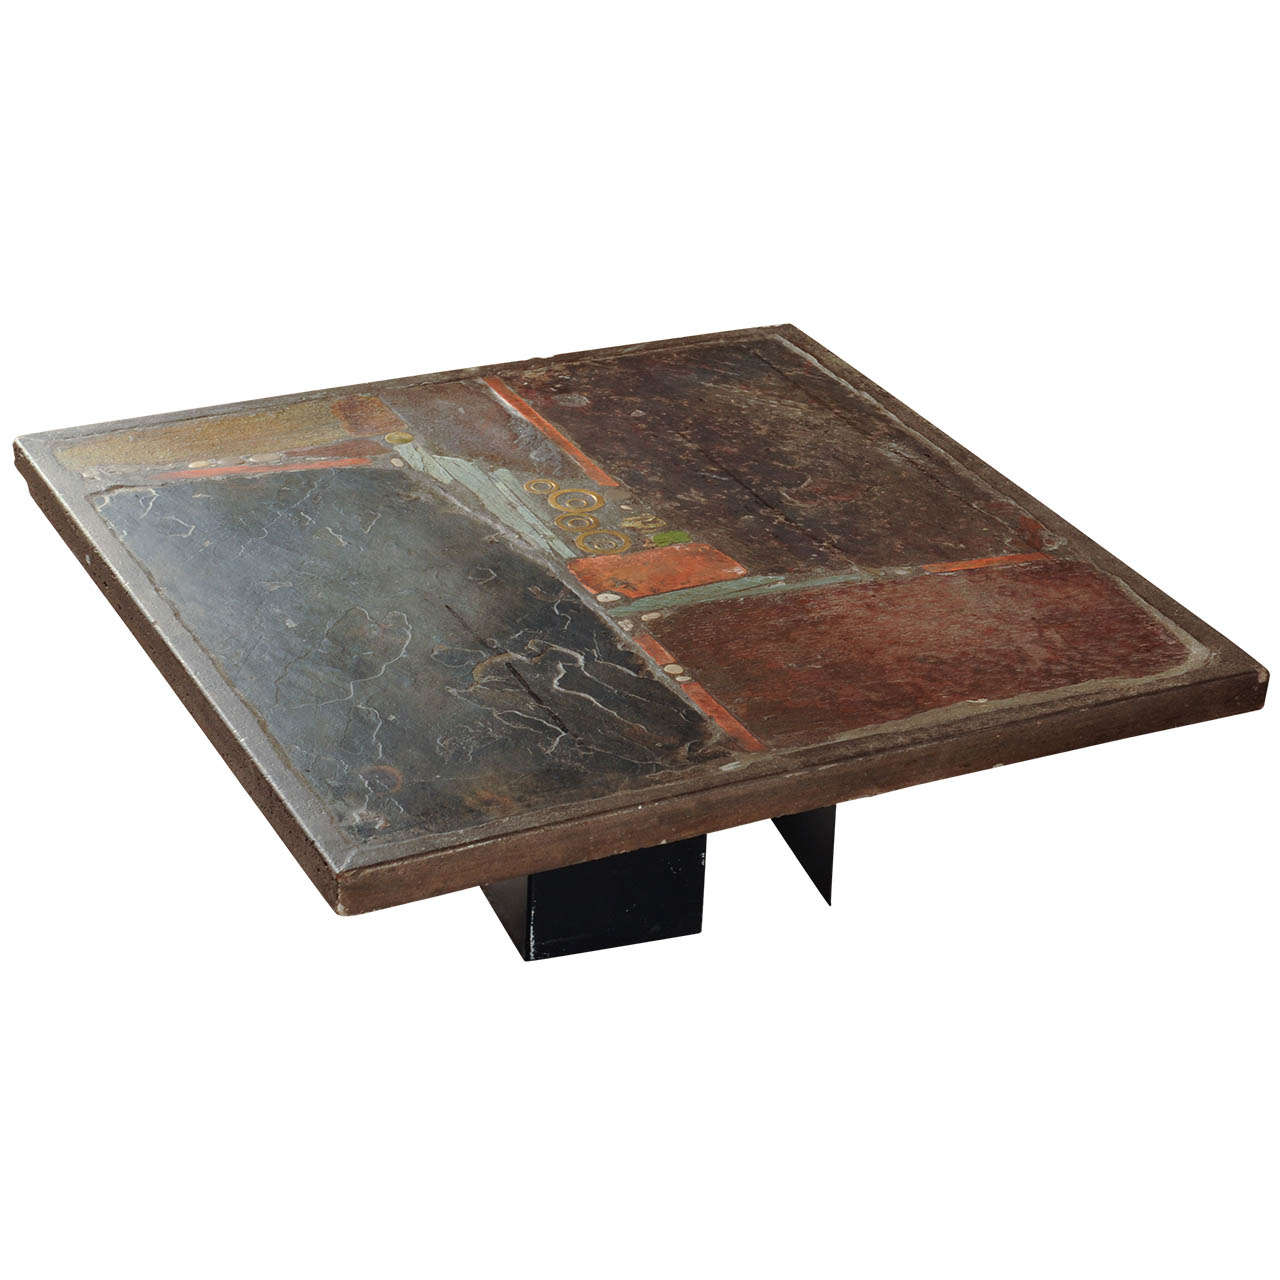 Slate stone square coffee table by paul kingma signed Stone coffee table